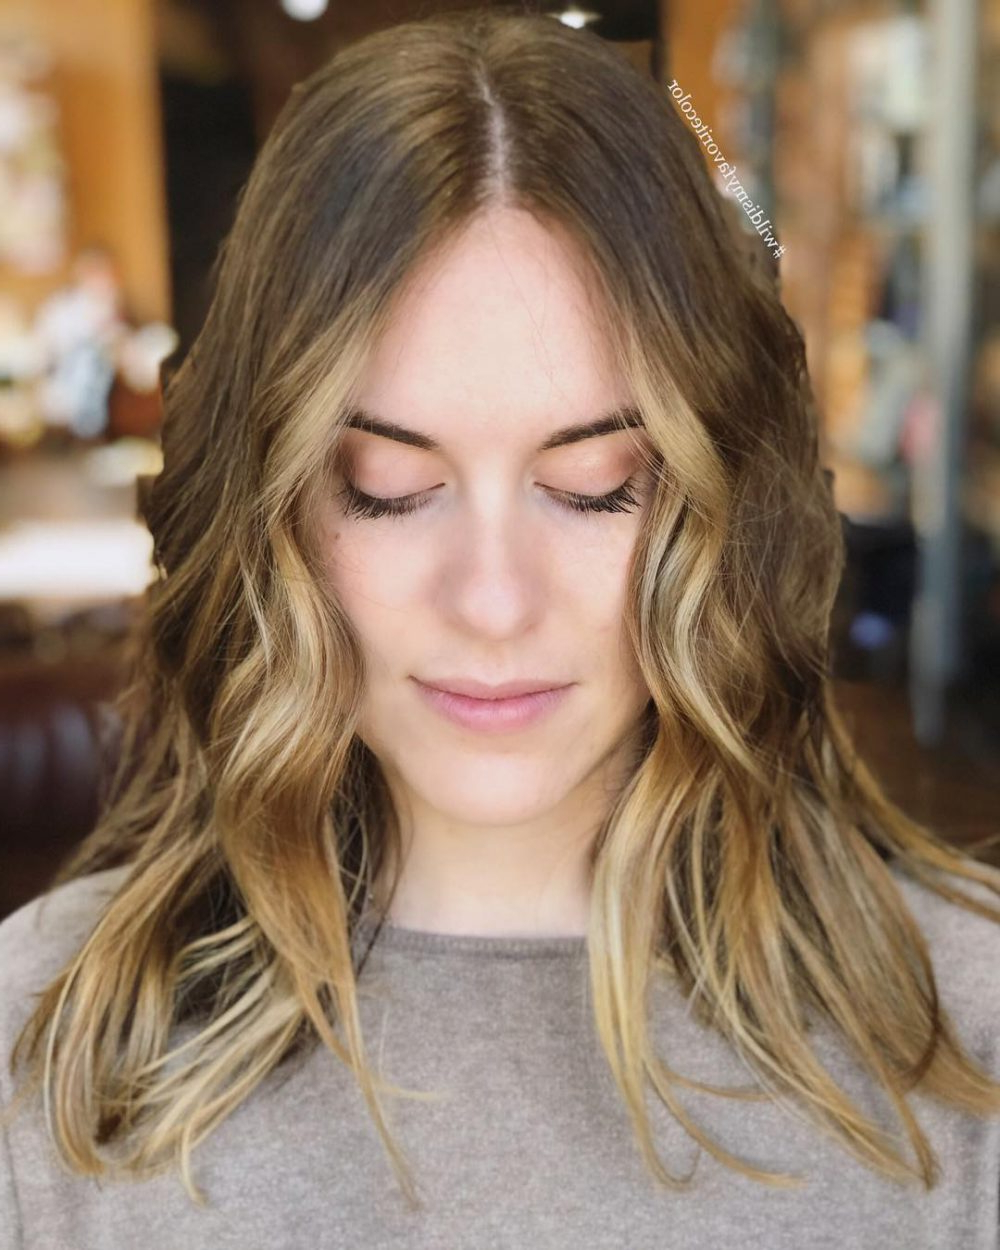 17 Flattering Medium Hairstyles For Round Faces In 2019 In Famous Medium Haircuts Ideas For Round Faces (View 2 of 20)